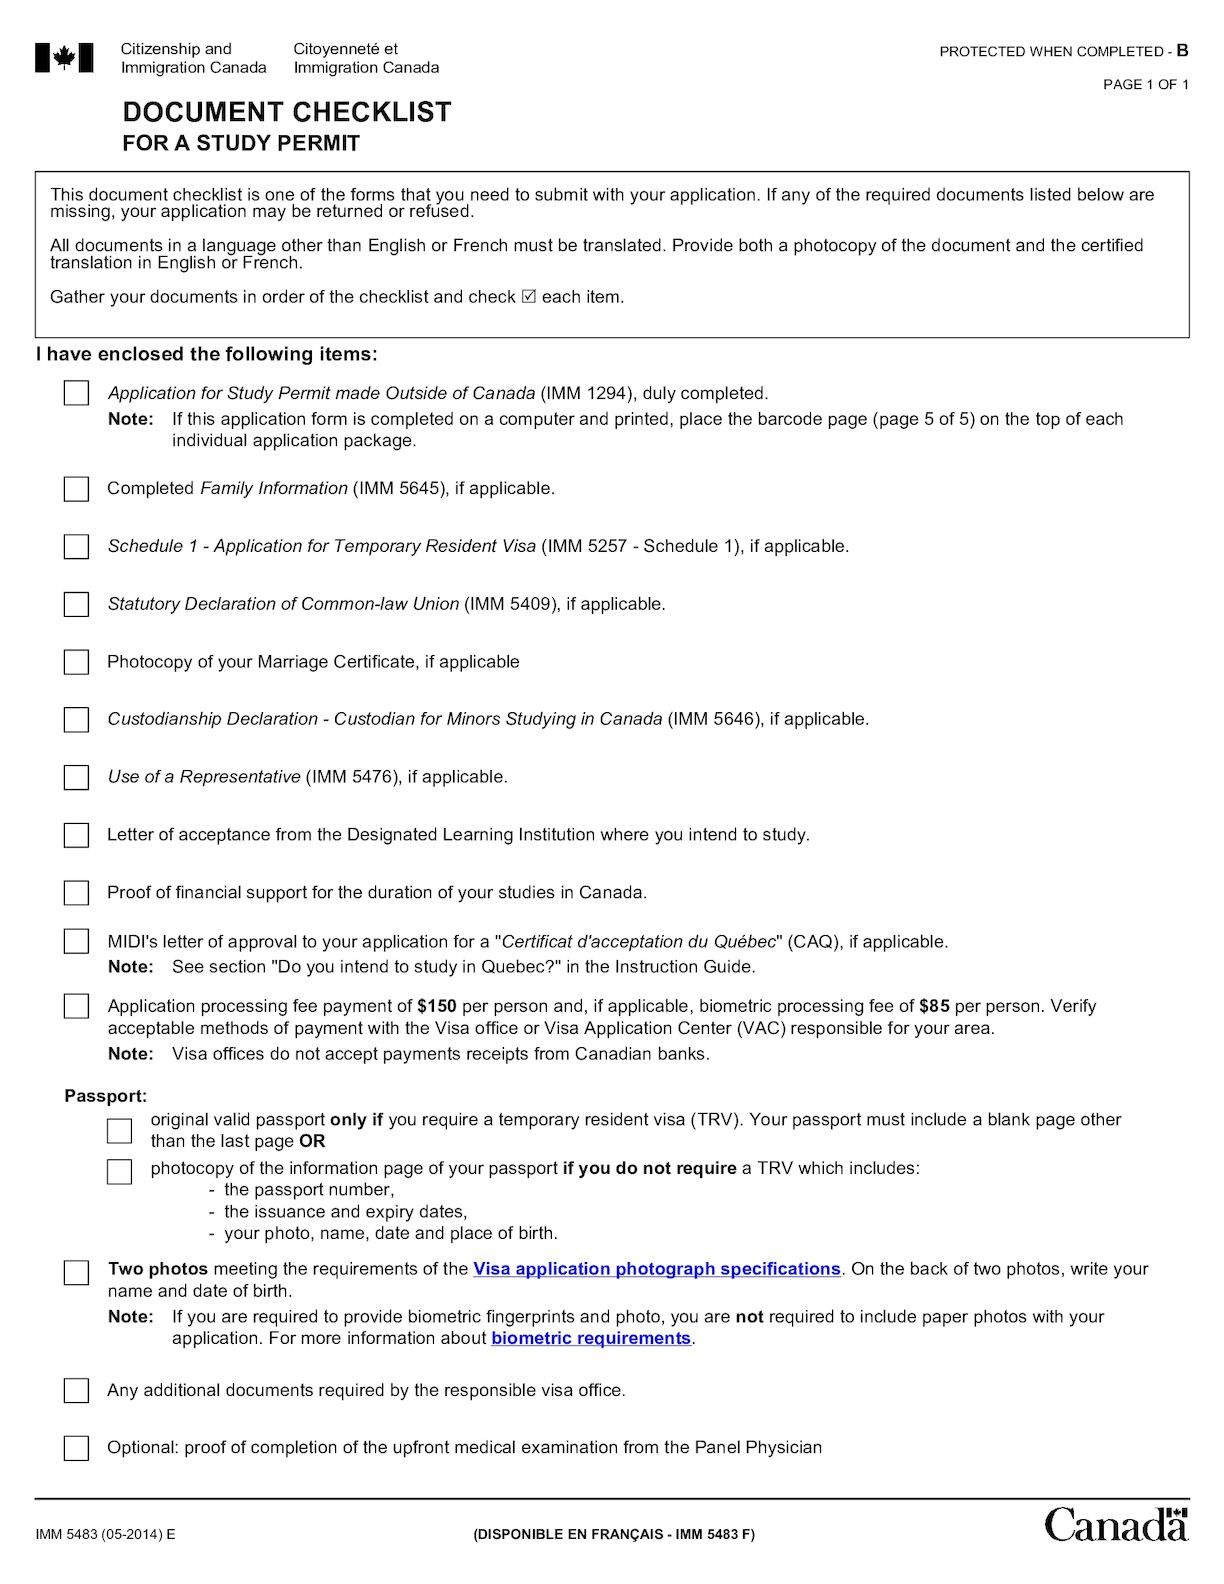 Calameo document checklist for Documents for apply citizenship